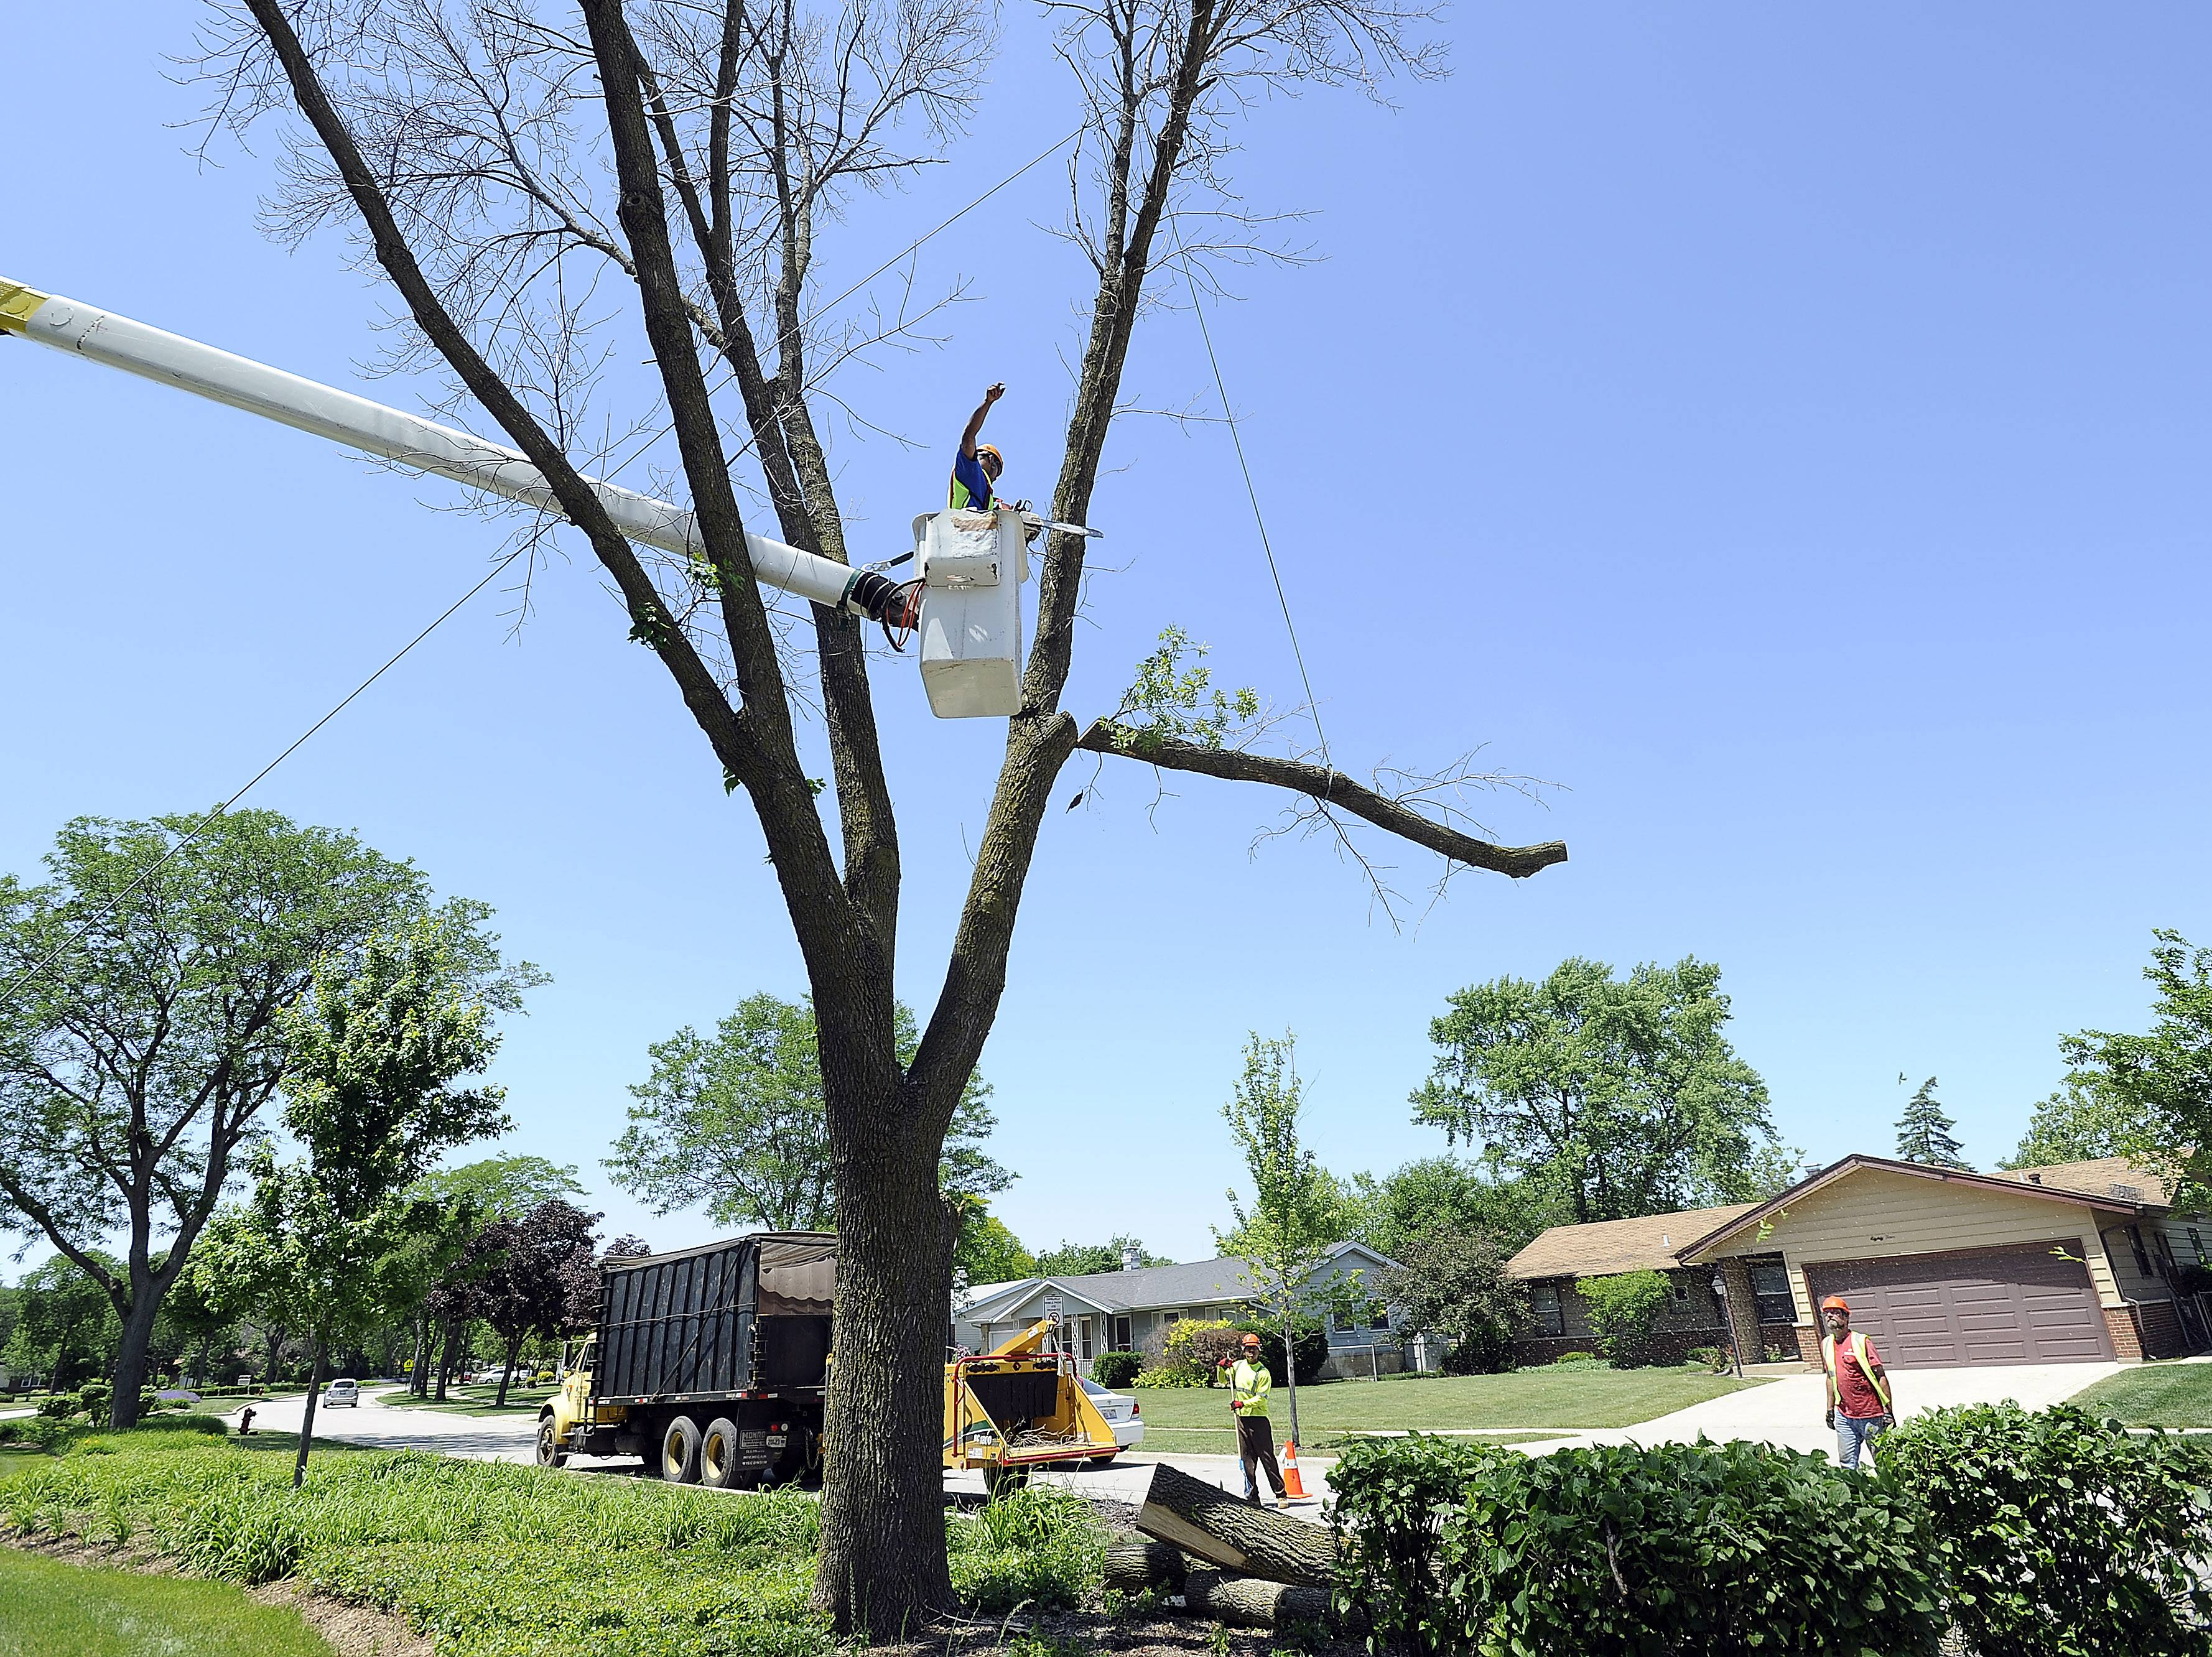 Crews from Powell Tree Care on Tuesday haul away branches cut away from an ash tree infested by the emerald ash borer along John F. Kennedy Boulevard in Elk Grove Village.